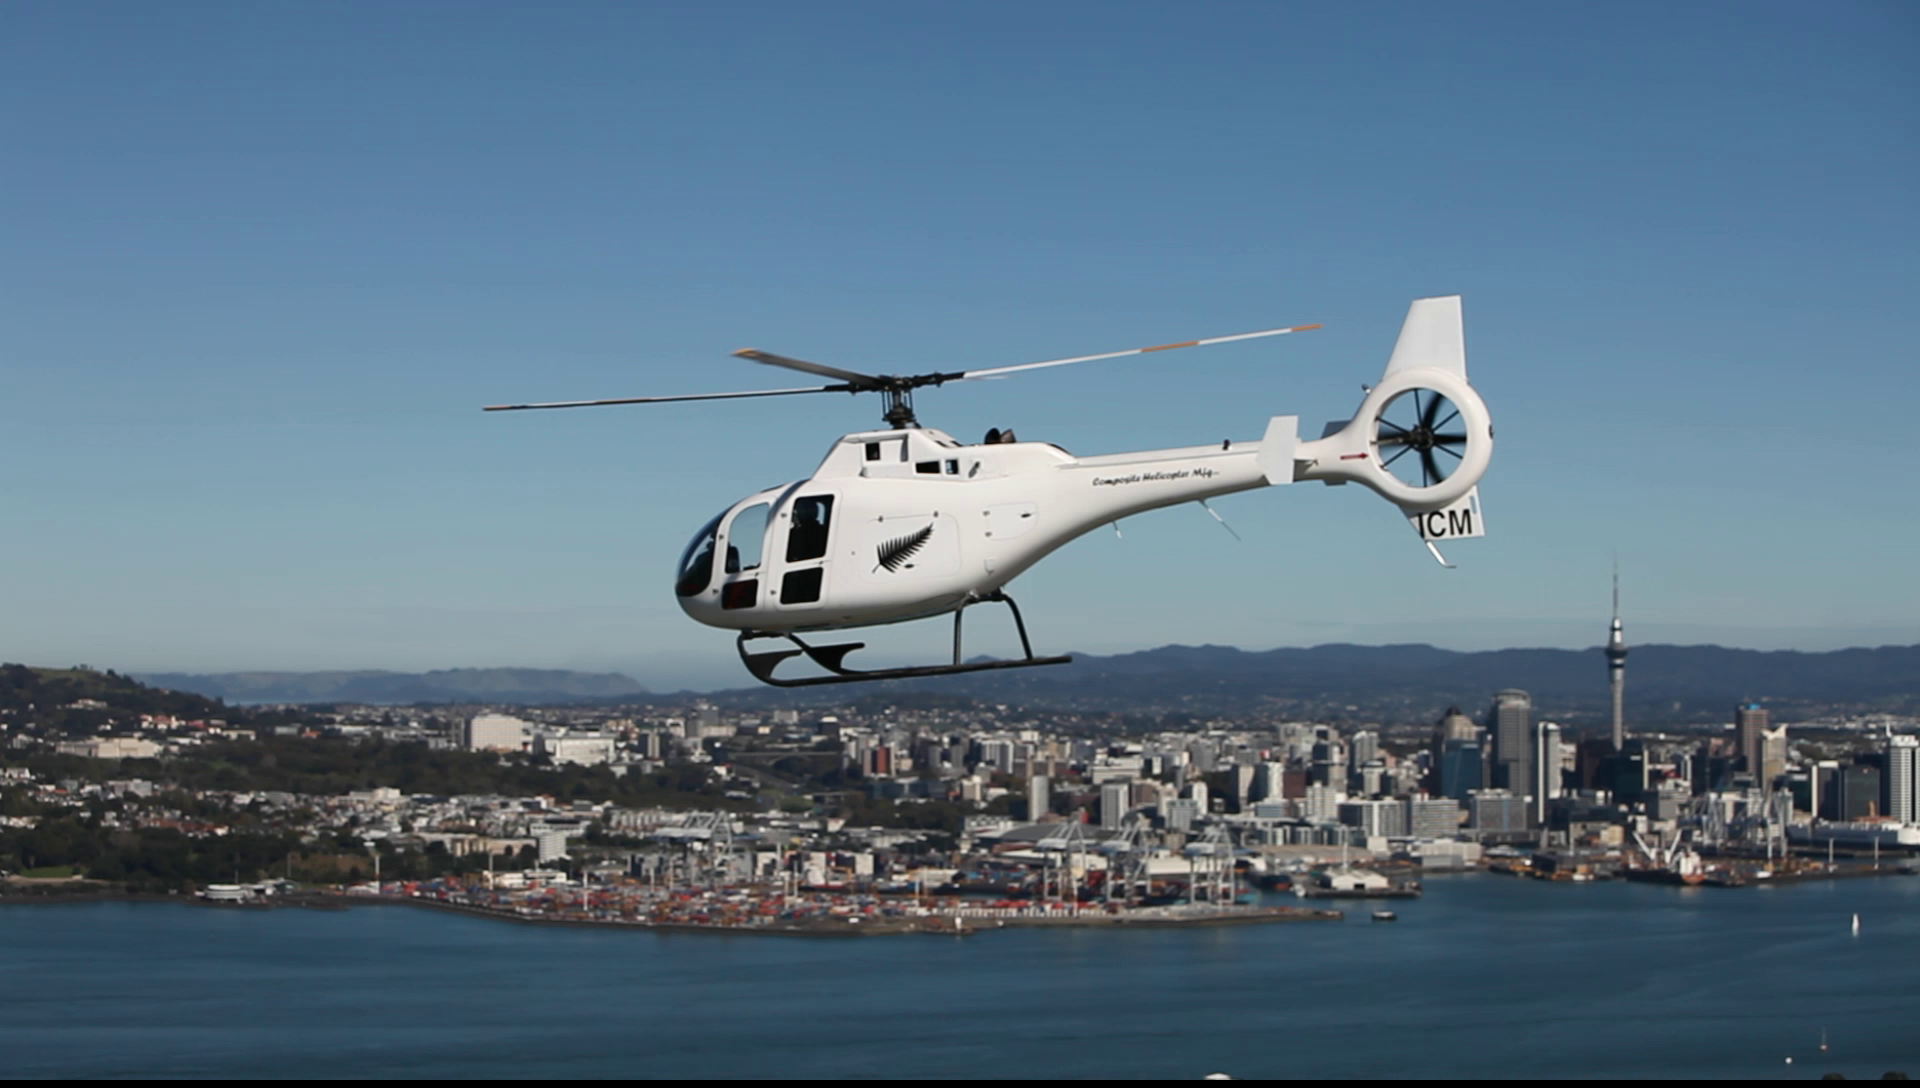 Composite helicopter made in New Zealand